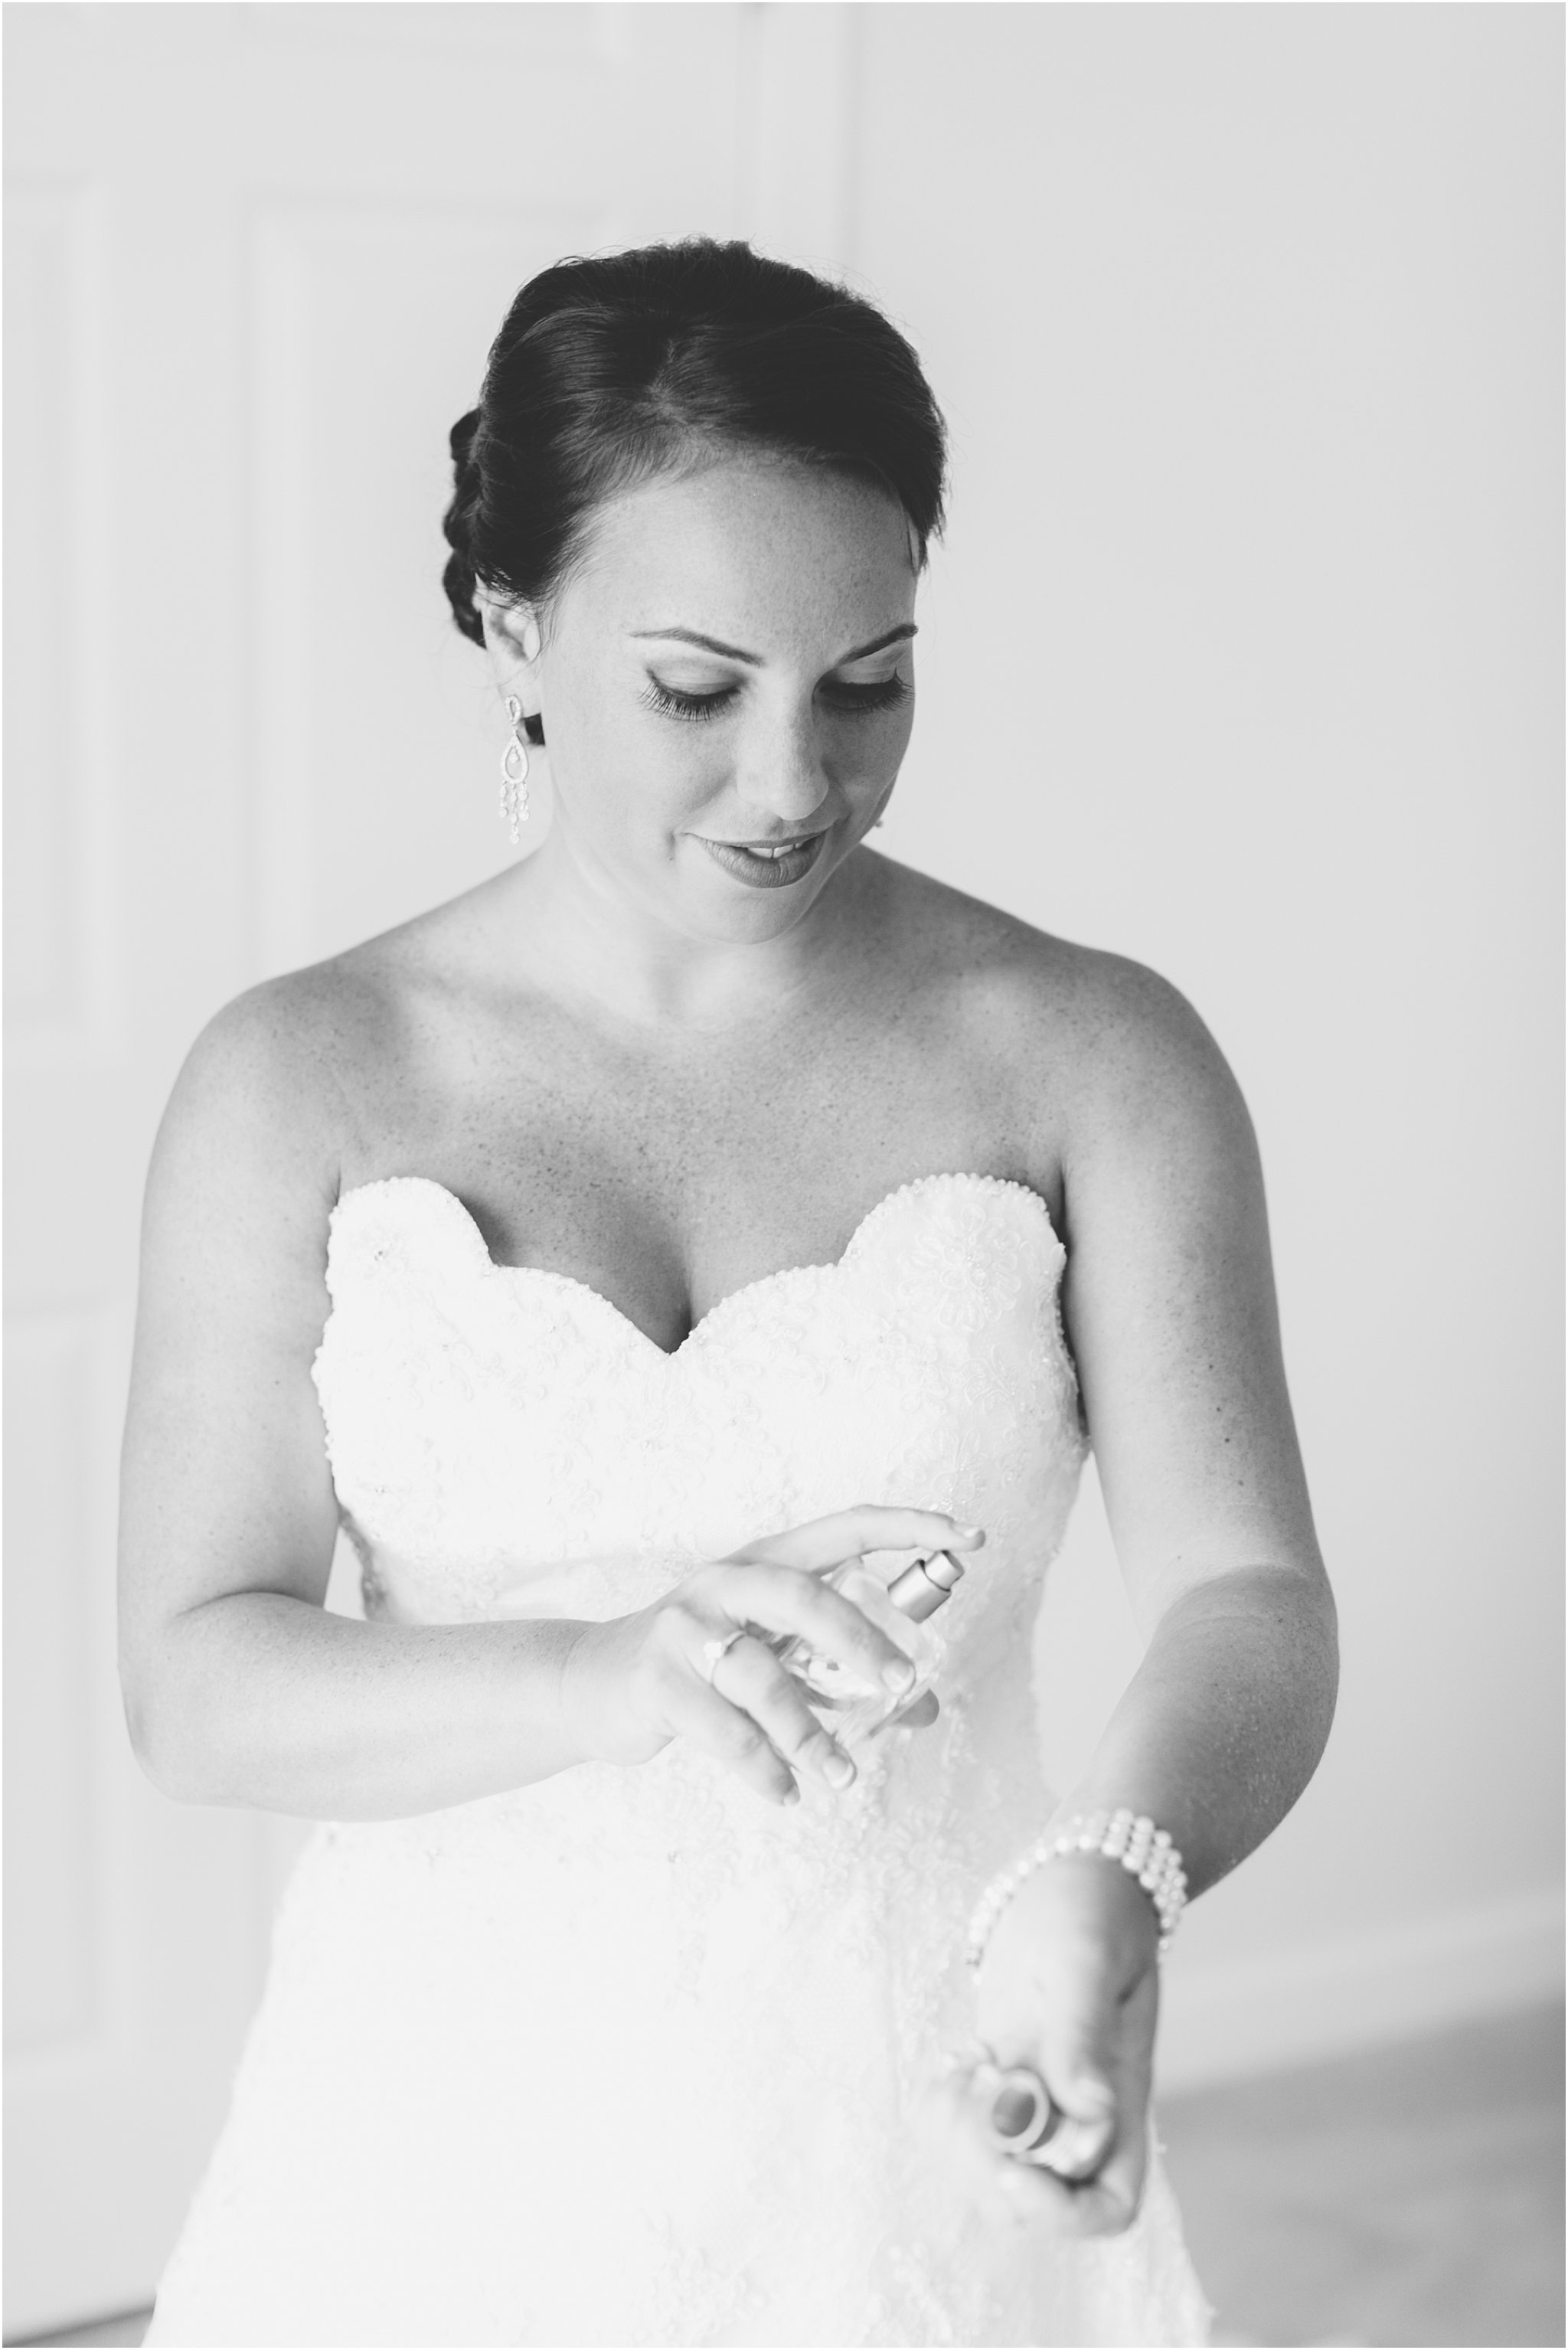 jessica_ryan_photography_wedding_photographs_must_haves_bride_top_wedding_photographs_virginia_wedding_photographer_2024